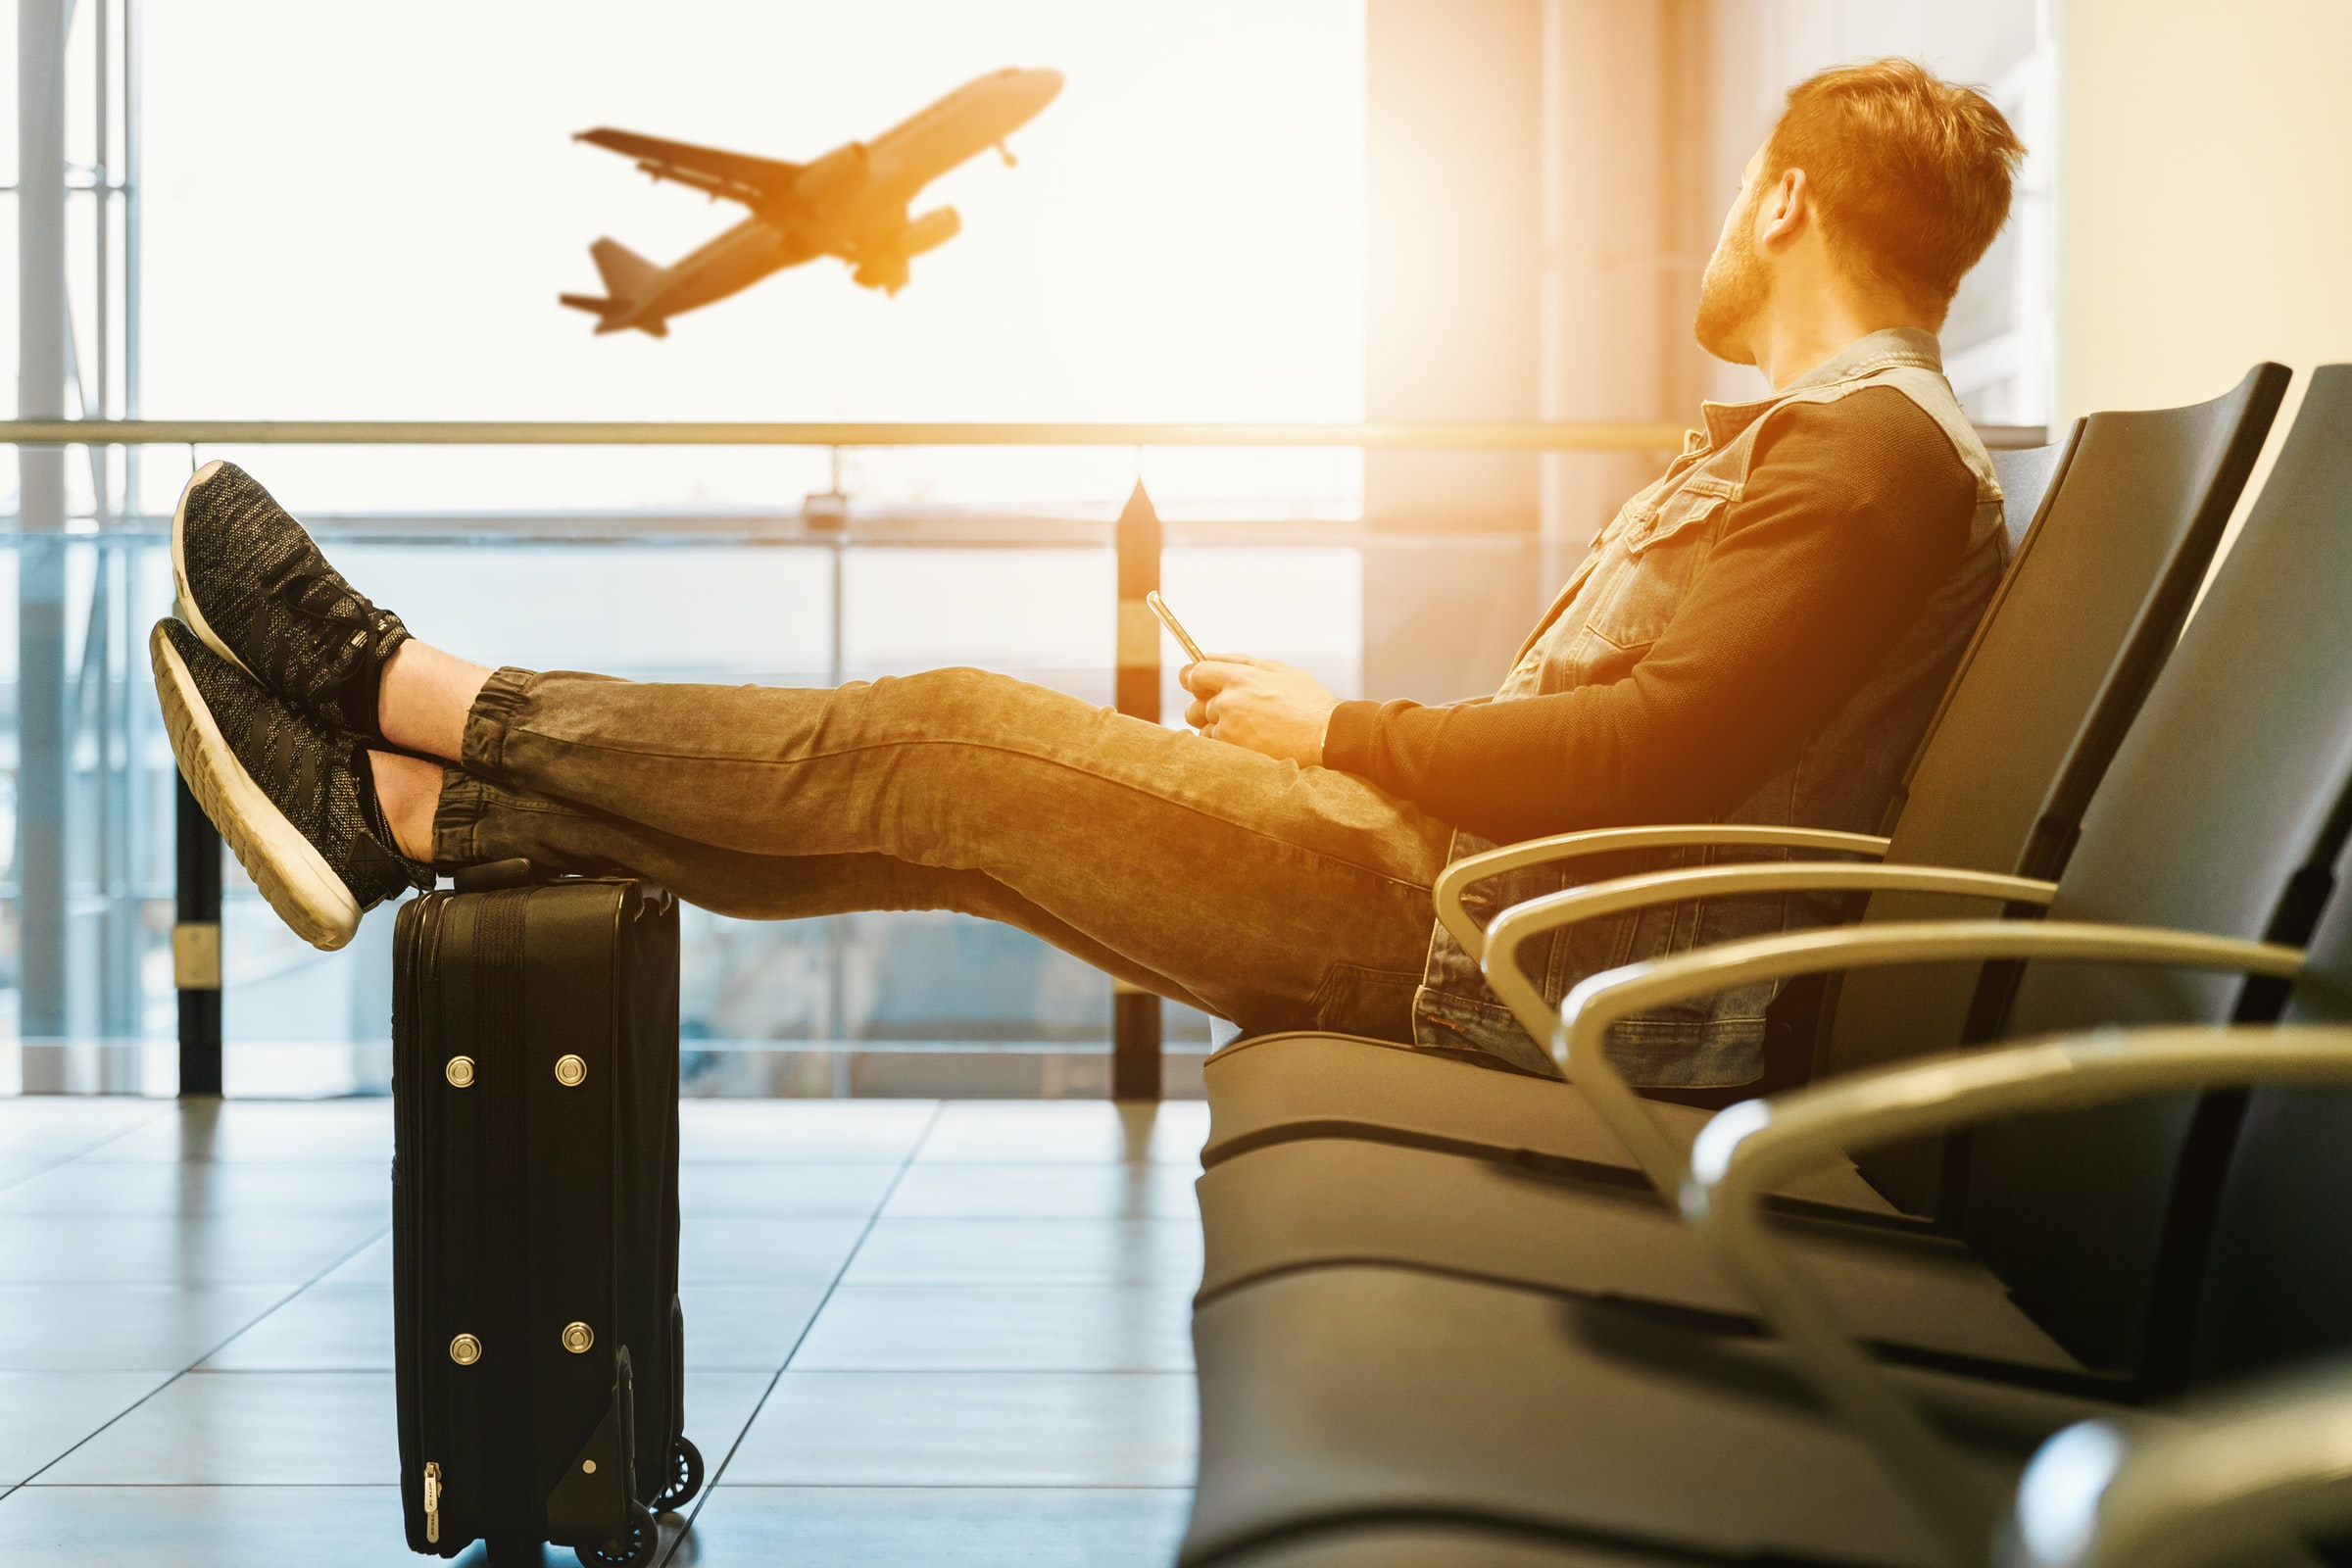 man in airport looking at aeroplane